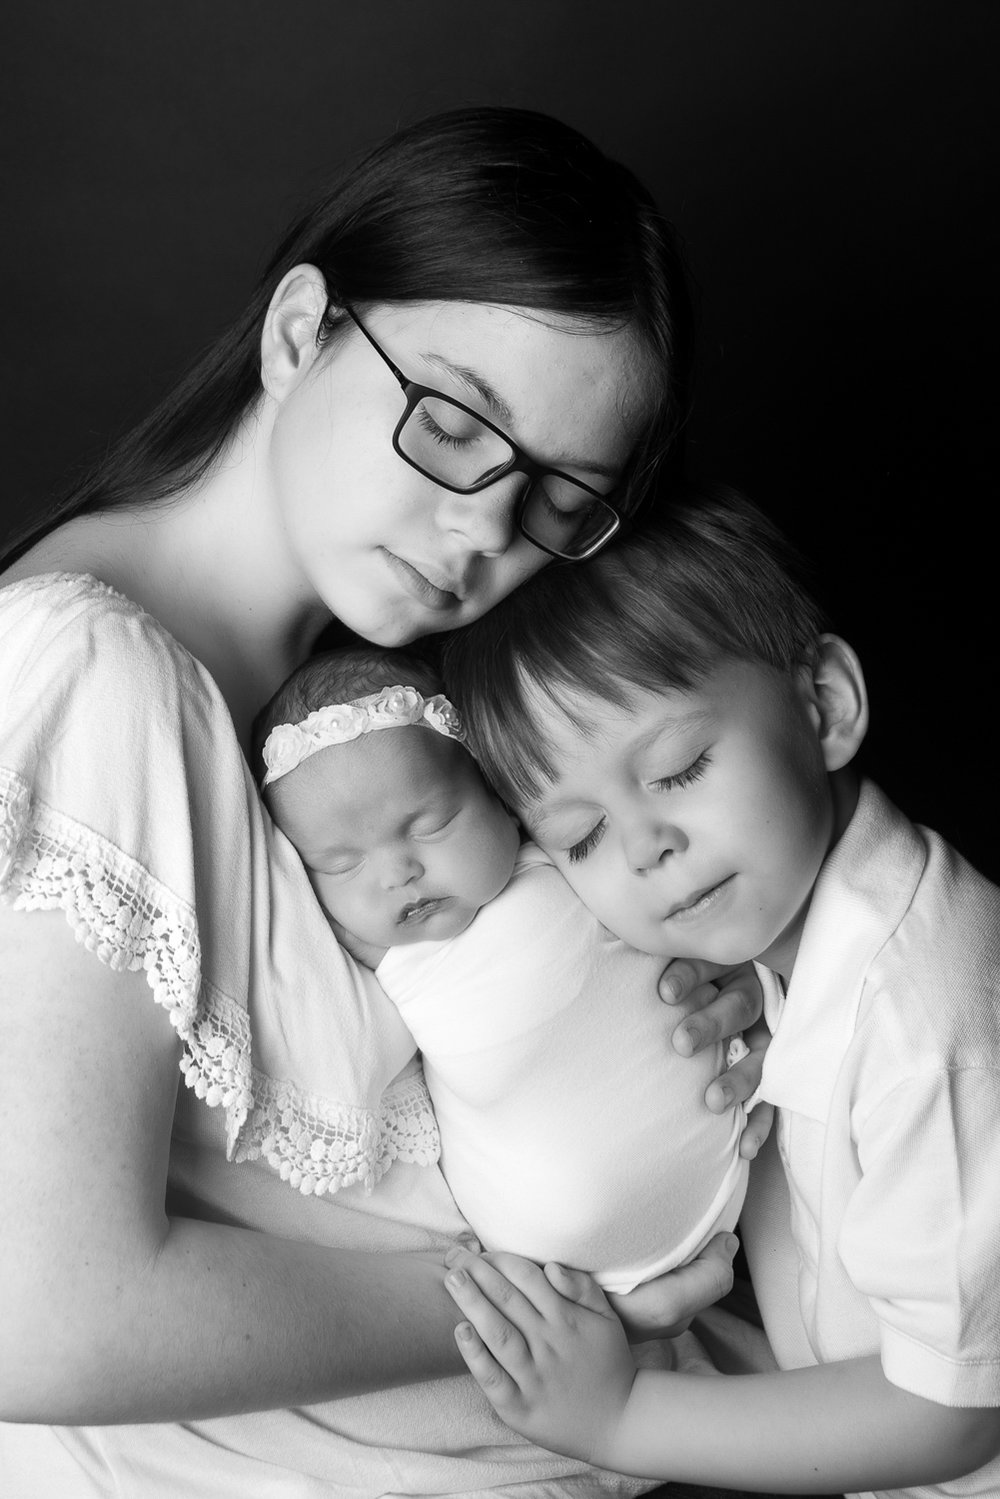 st-louis-newborn-photography-siblings-brother-sister-black-and-white.jpg